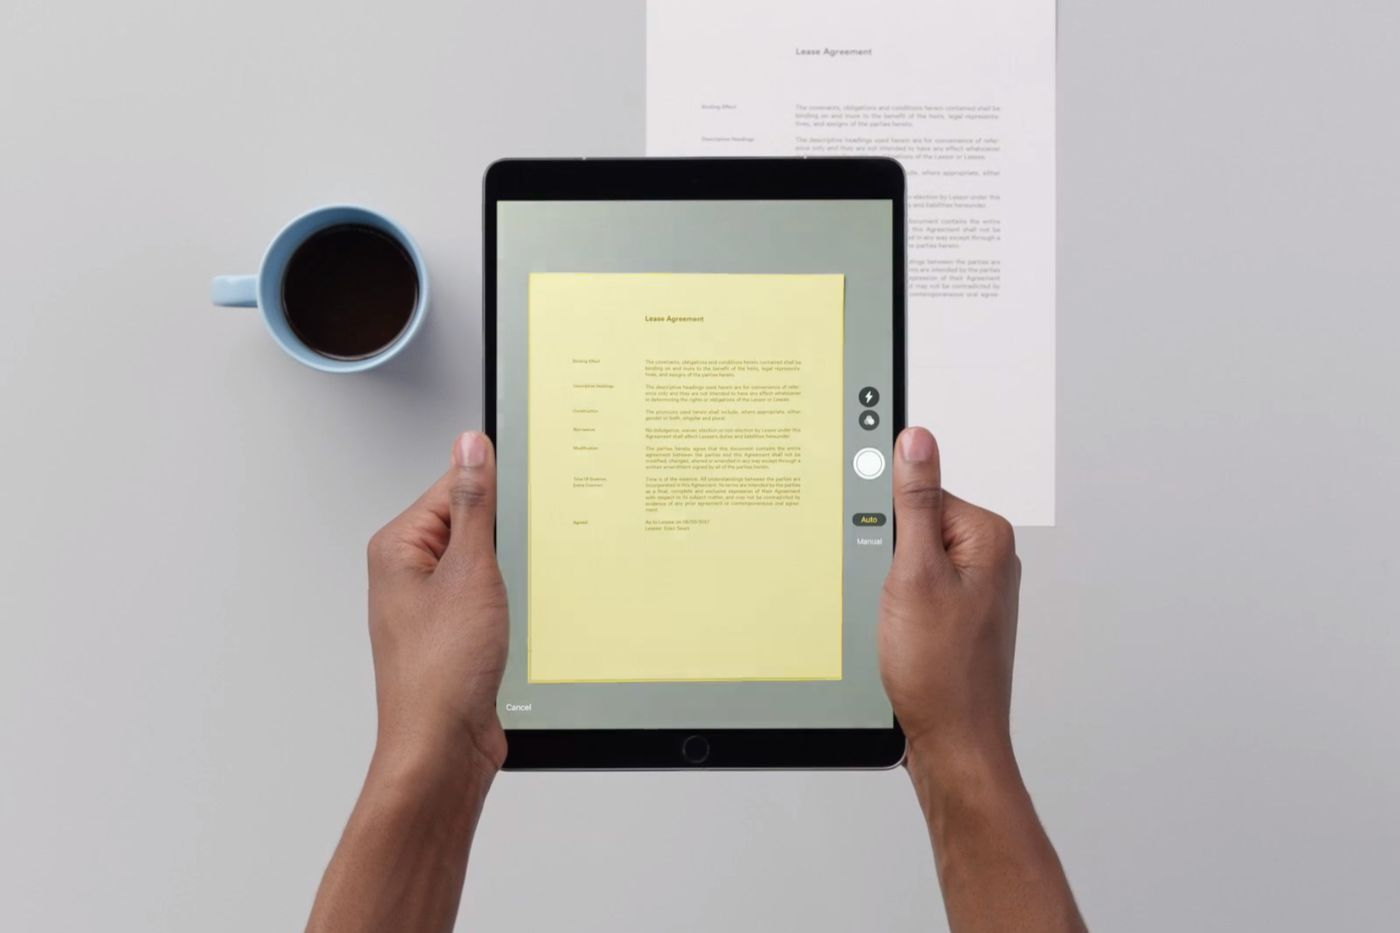 How to use apples terrific document scanner in ios 11